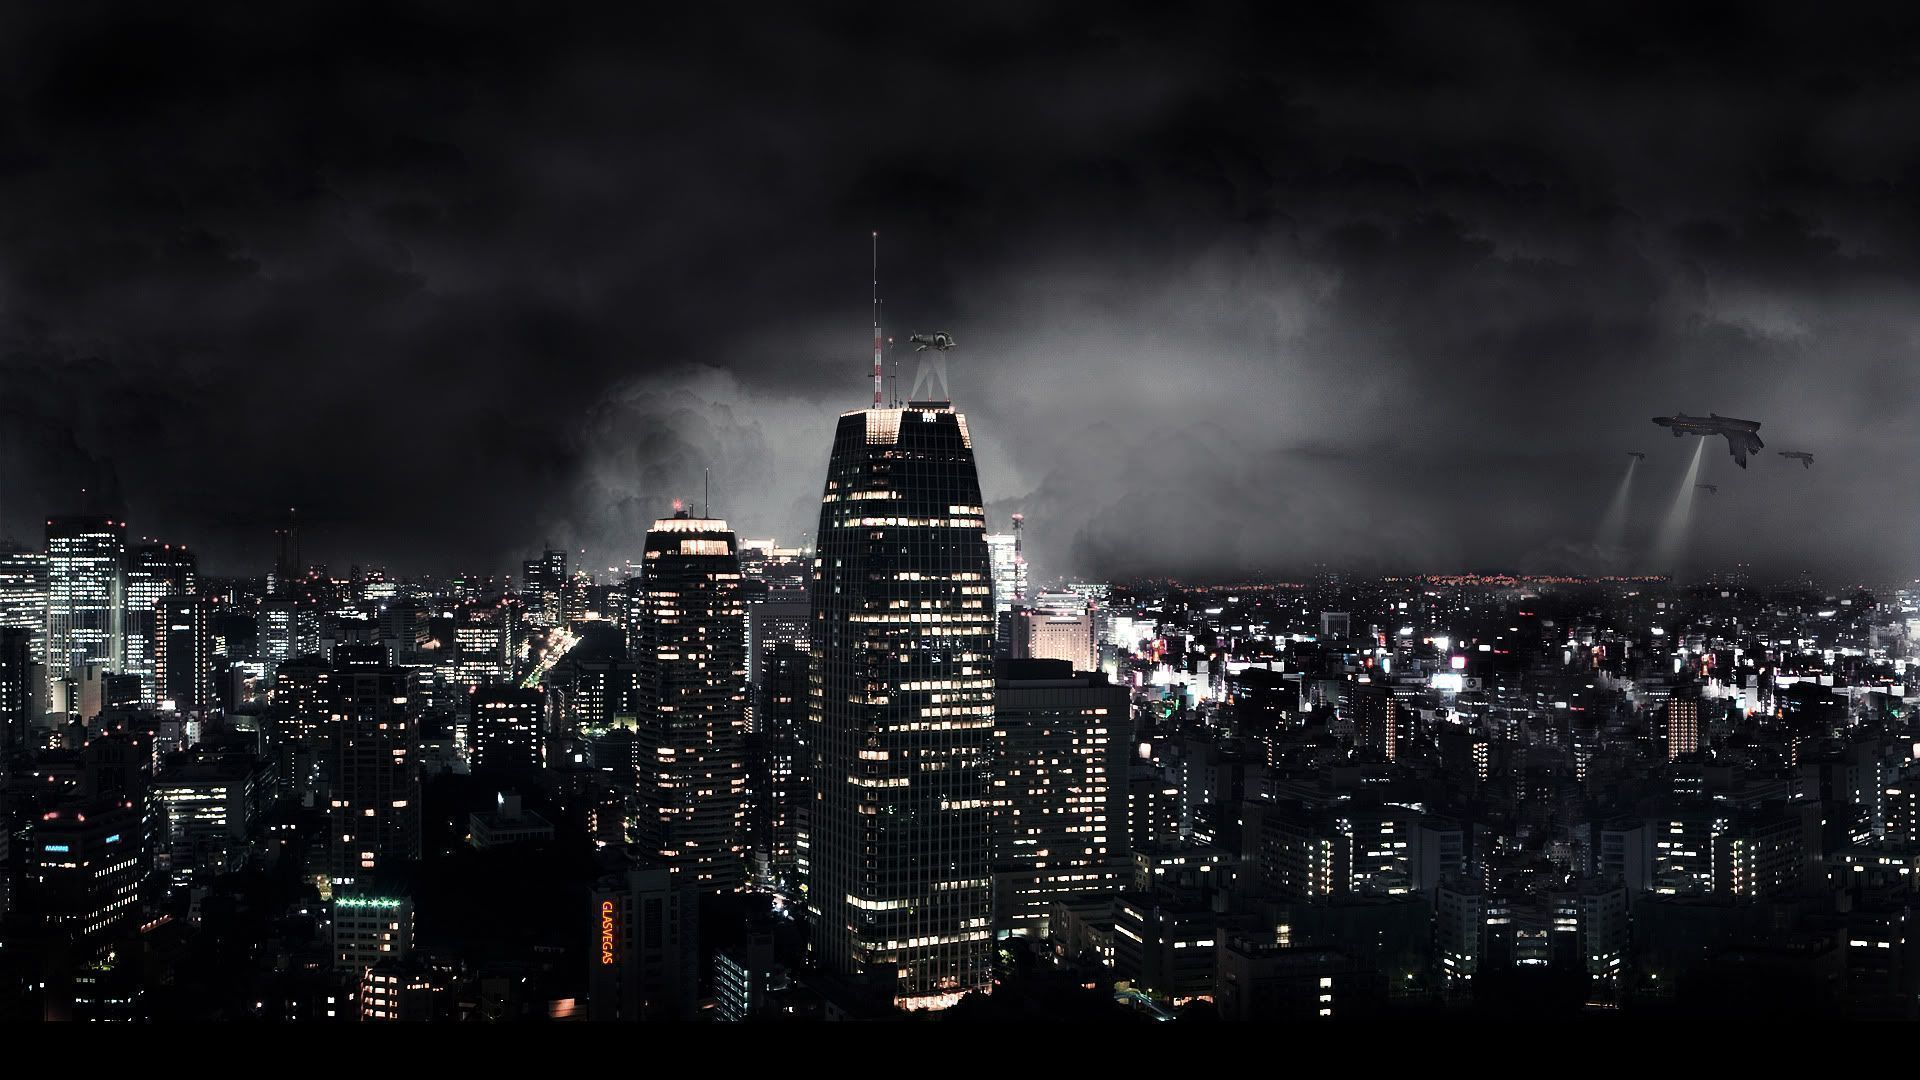 City-Computer-Desktop-Backgrounds-1920x1080-ID-wallpaper-wp3803806